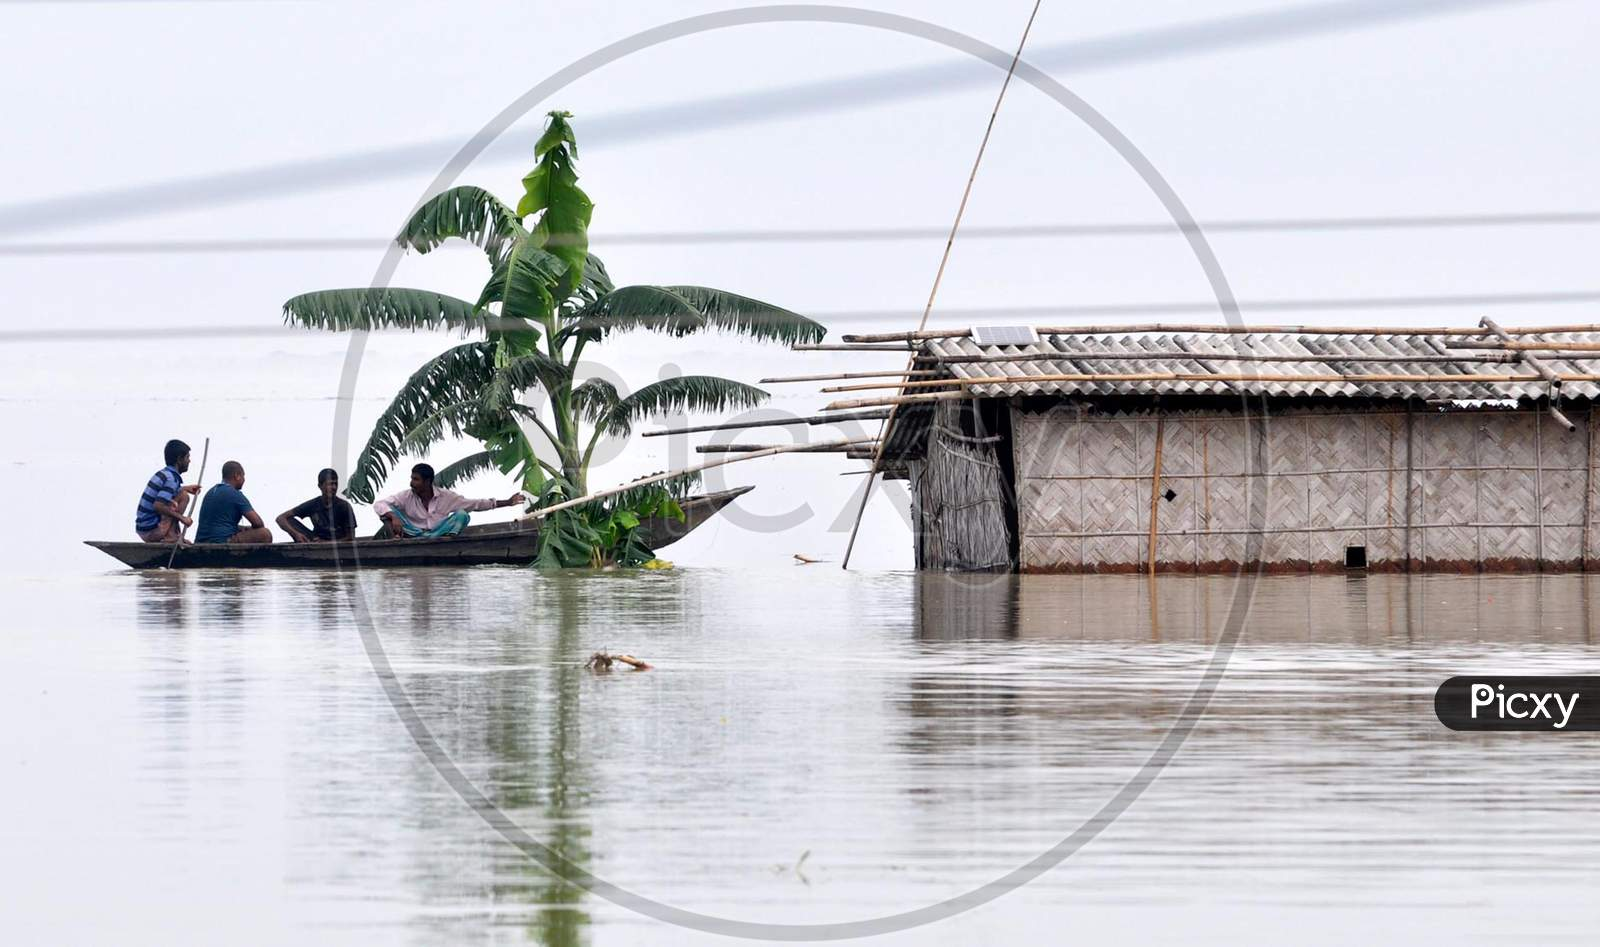 People navigate the flood-affected areas using a boat in Hatisela in Kamrup district of Assam on July 14, 2020